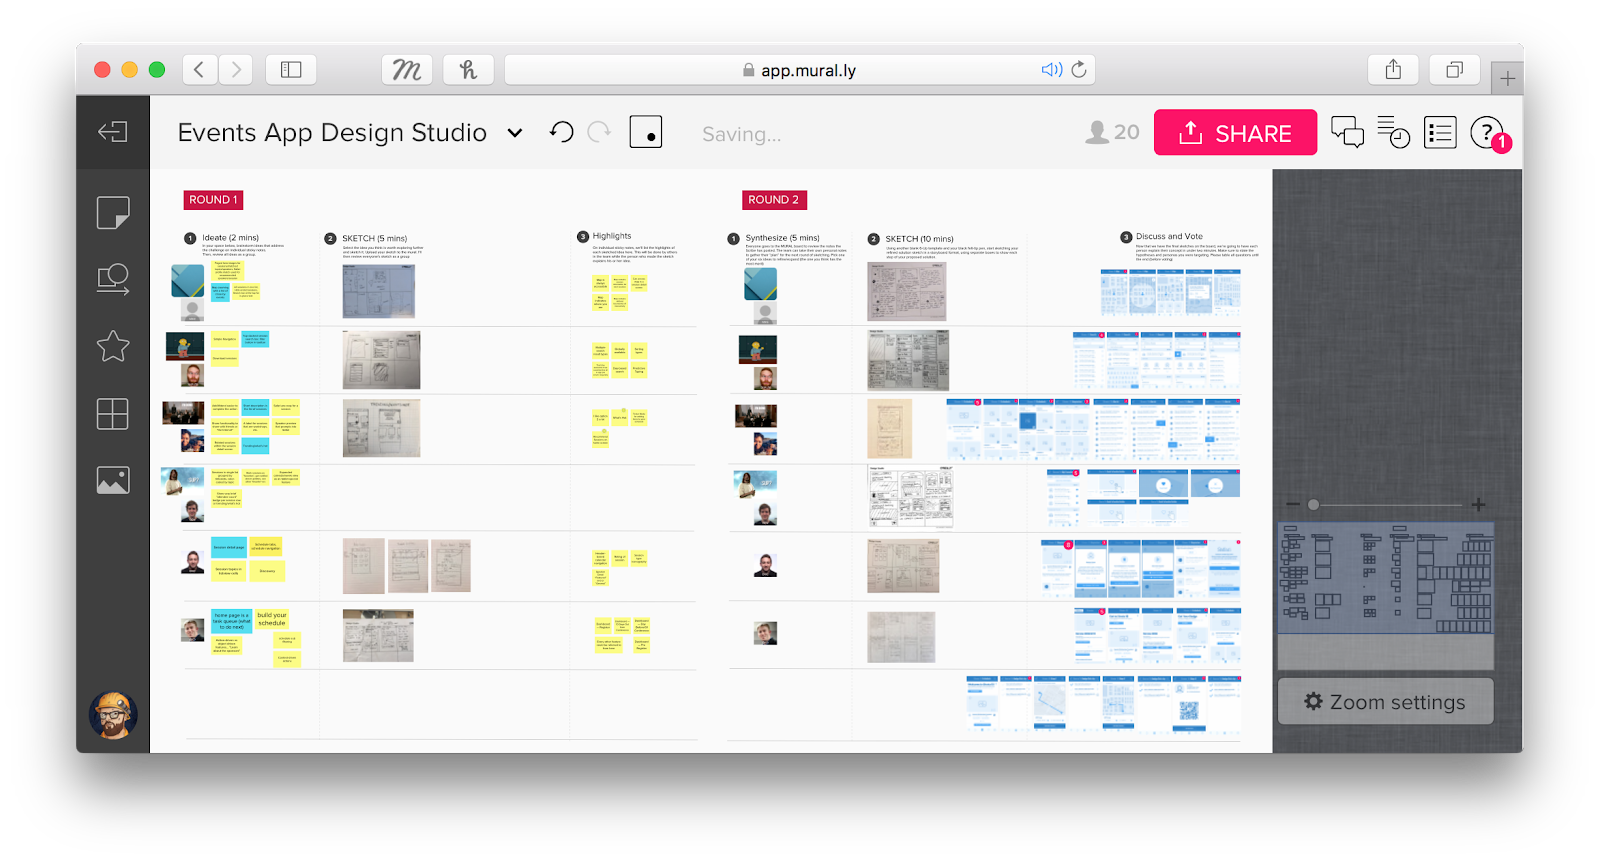 How To Run A Design Studio Remotely With Mural